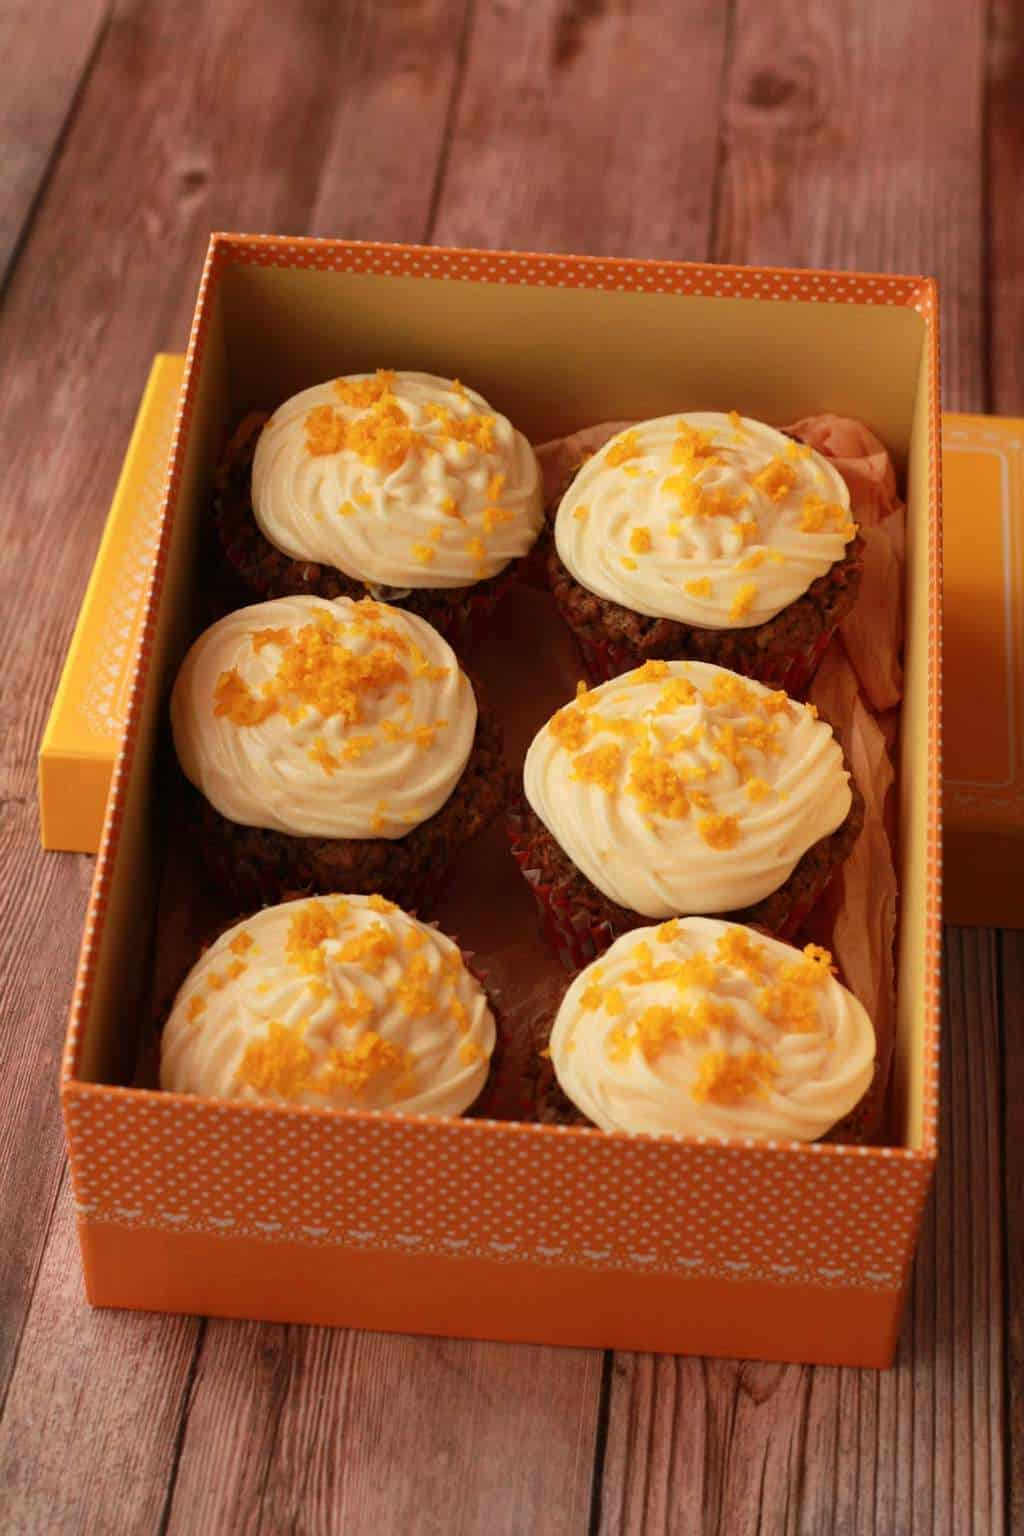 Vegan Carrot Cake Cupcakes with walnuts and orange zest, topped with orange cream frosting. #vegan #lovingitvegan #carrotcakecupcakes #cupcakes #dessert